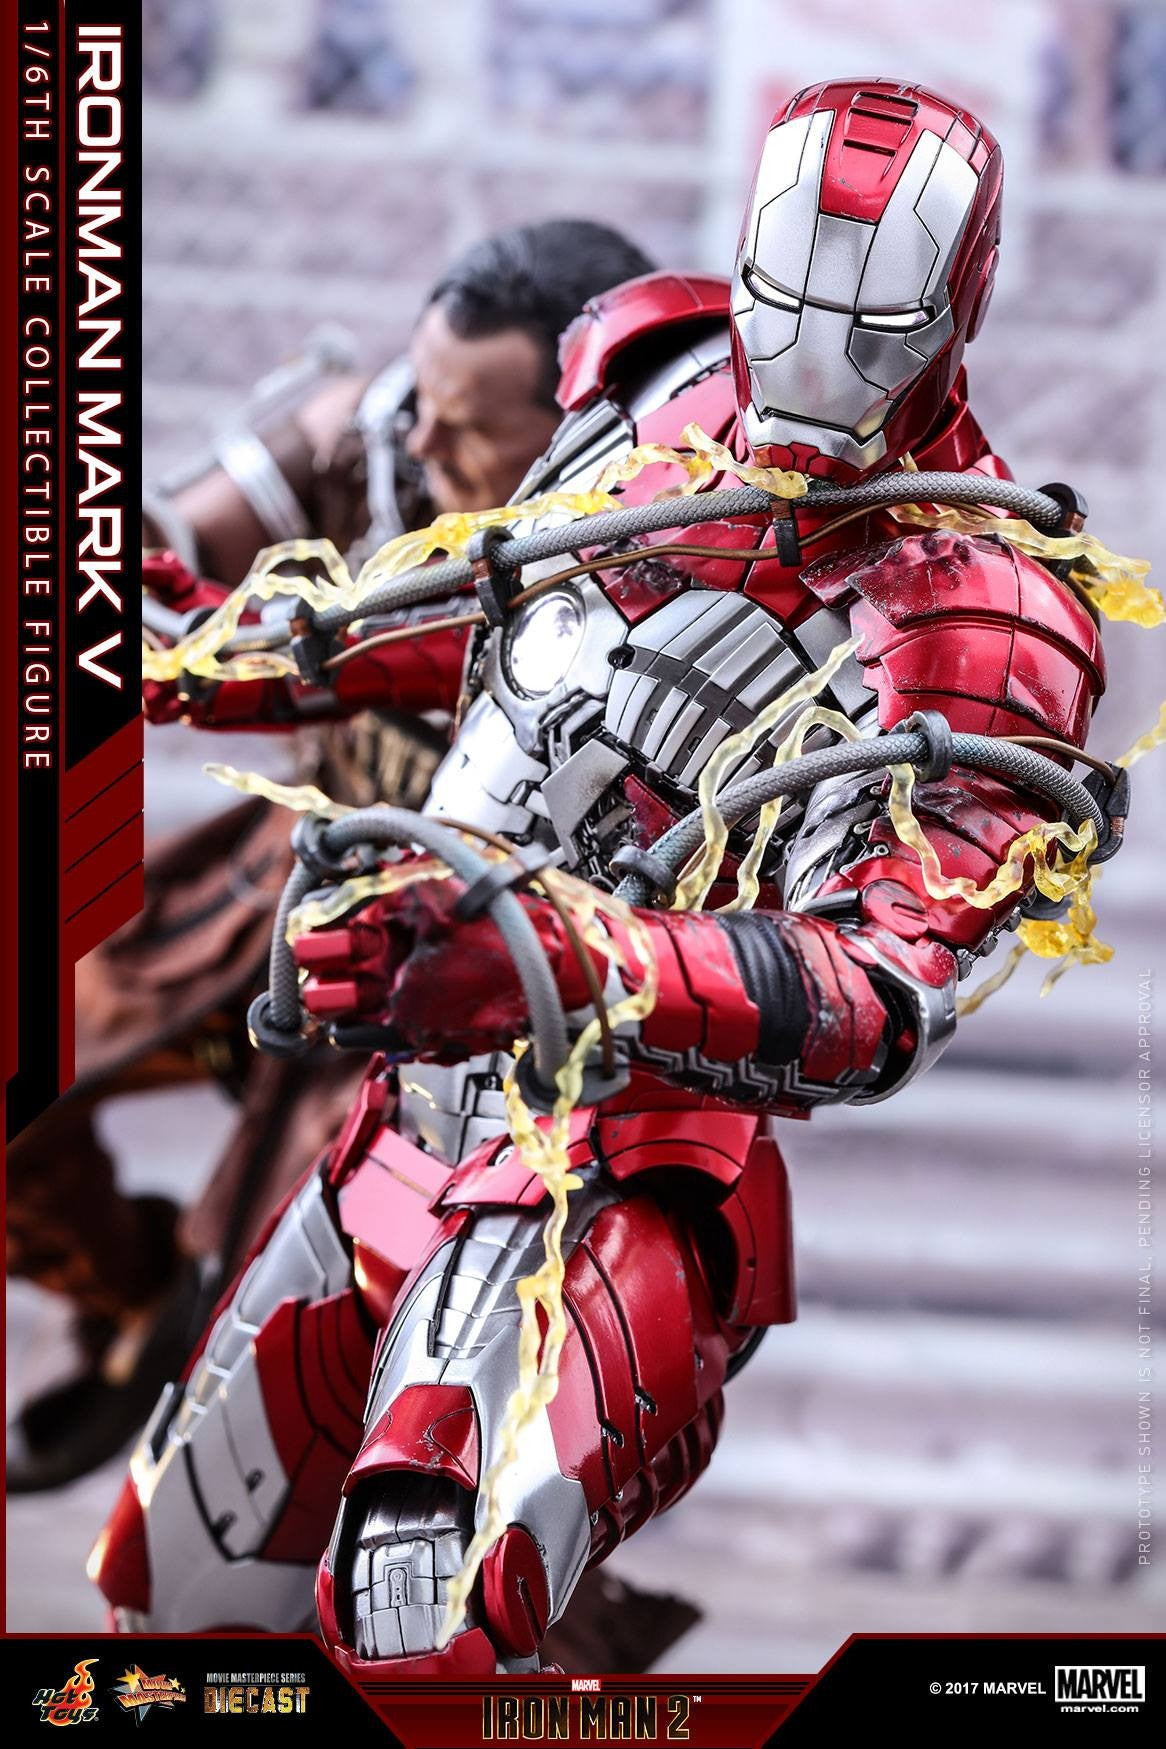 Hot Toys - MMS400D18 - Iron Man 2 - Mark V (DIECAST) - Marvelous Toys - 4